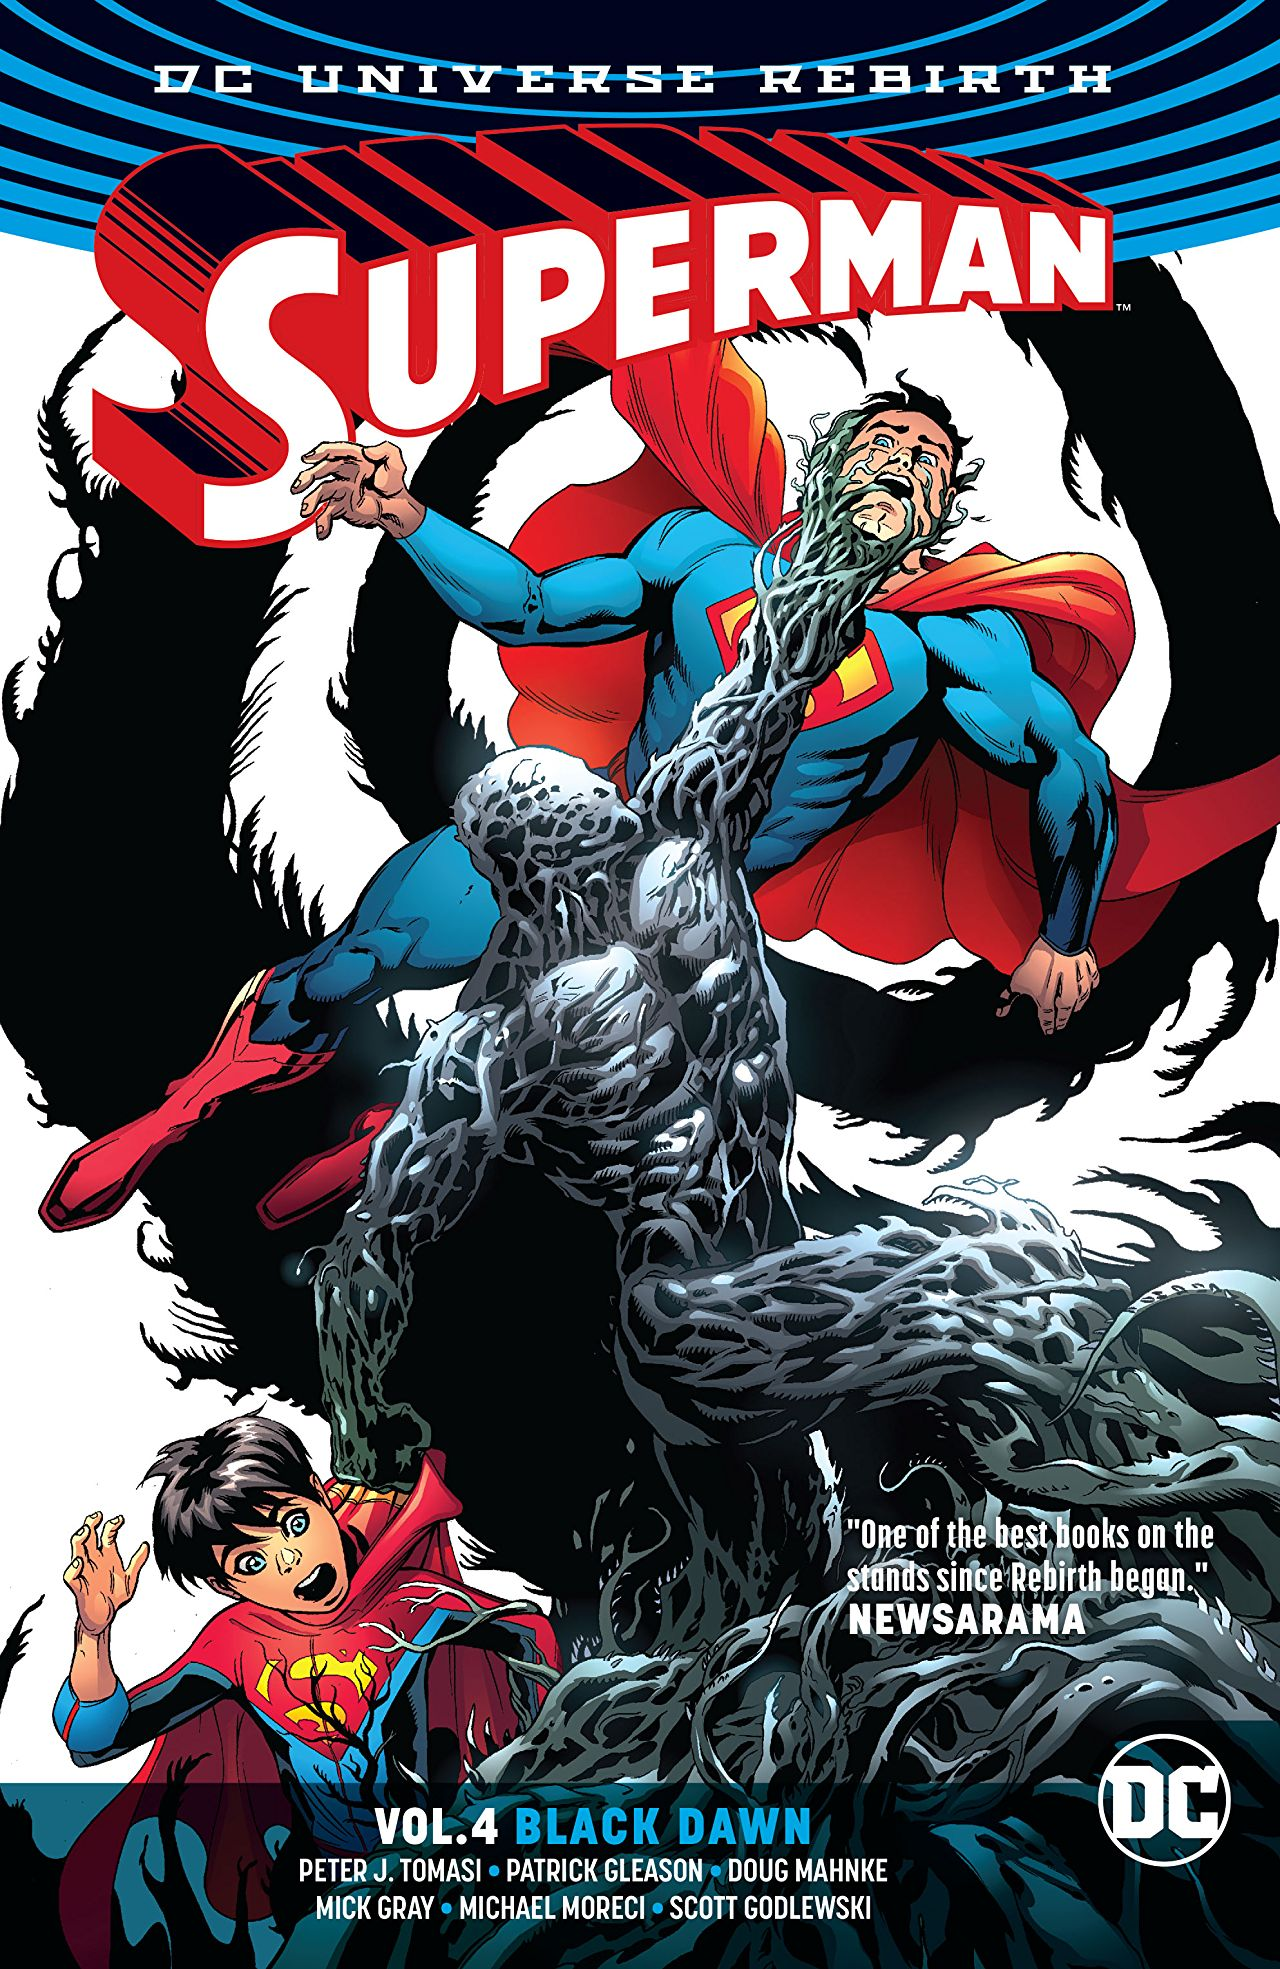 'Superman Vol. 4: Black Dawn' review: Tomasi and Gleason's excellent run continues